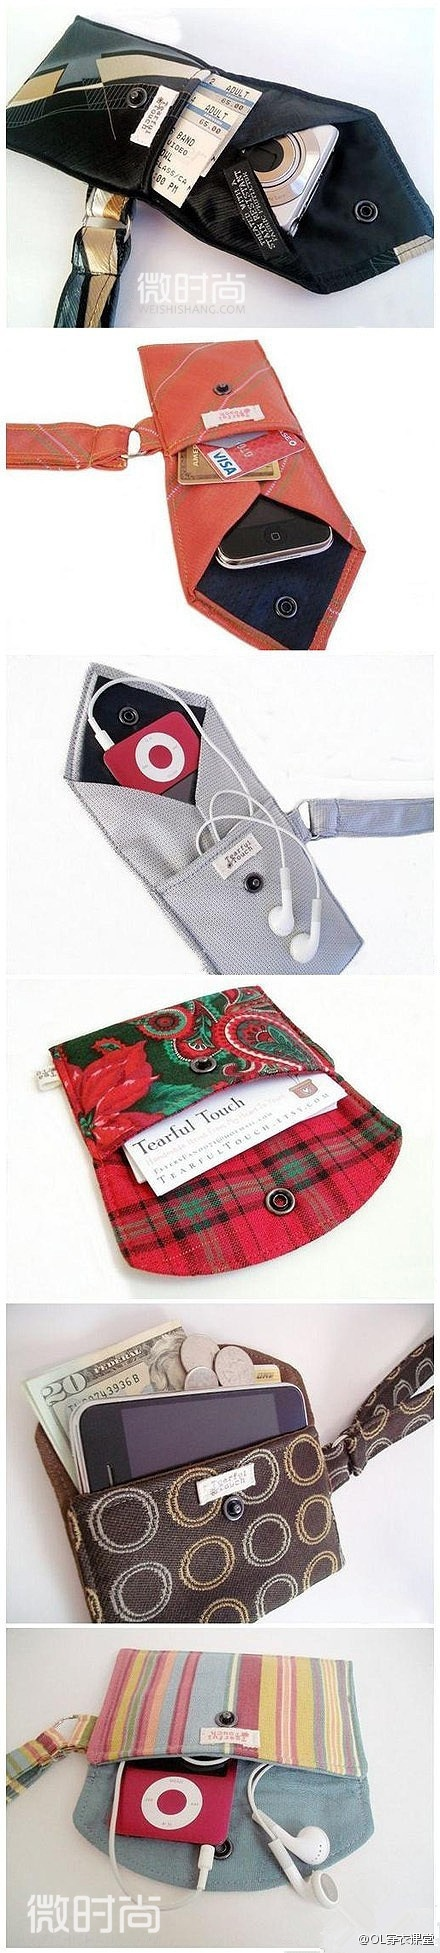 Best creative ideas images on pinterest mens ties crafts neck